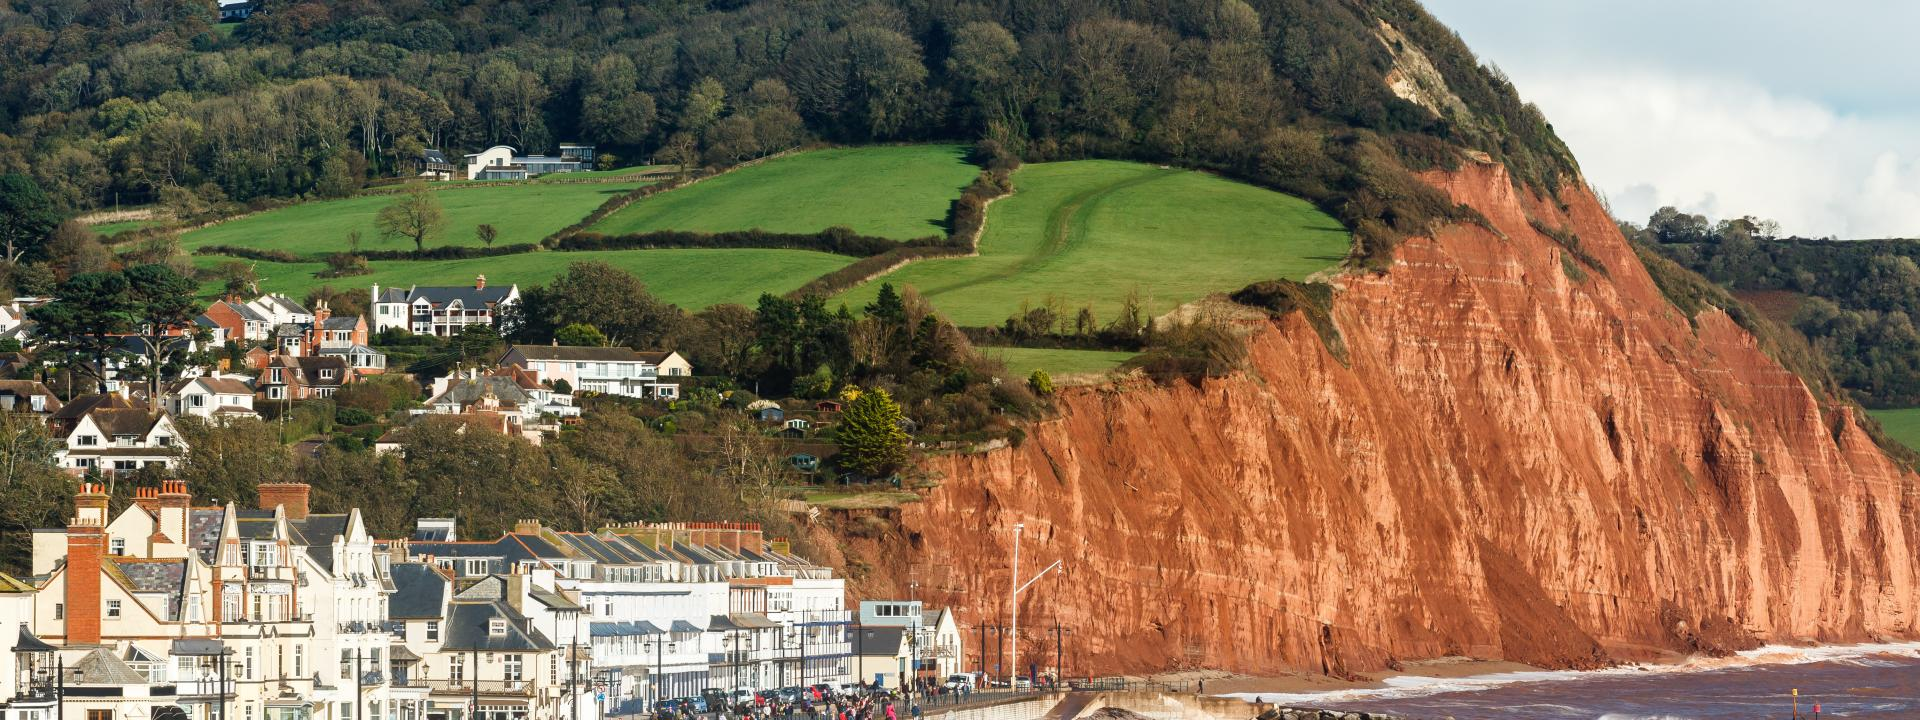 Sid Valley Holiday Parks In Sidmouth Devon